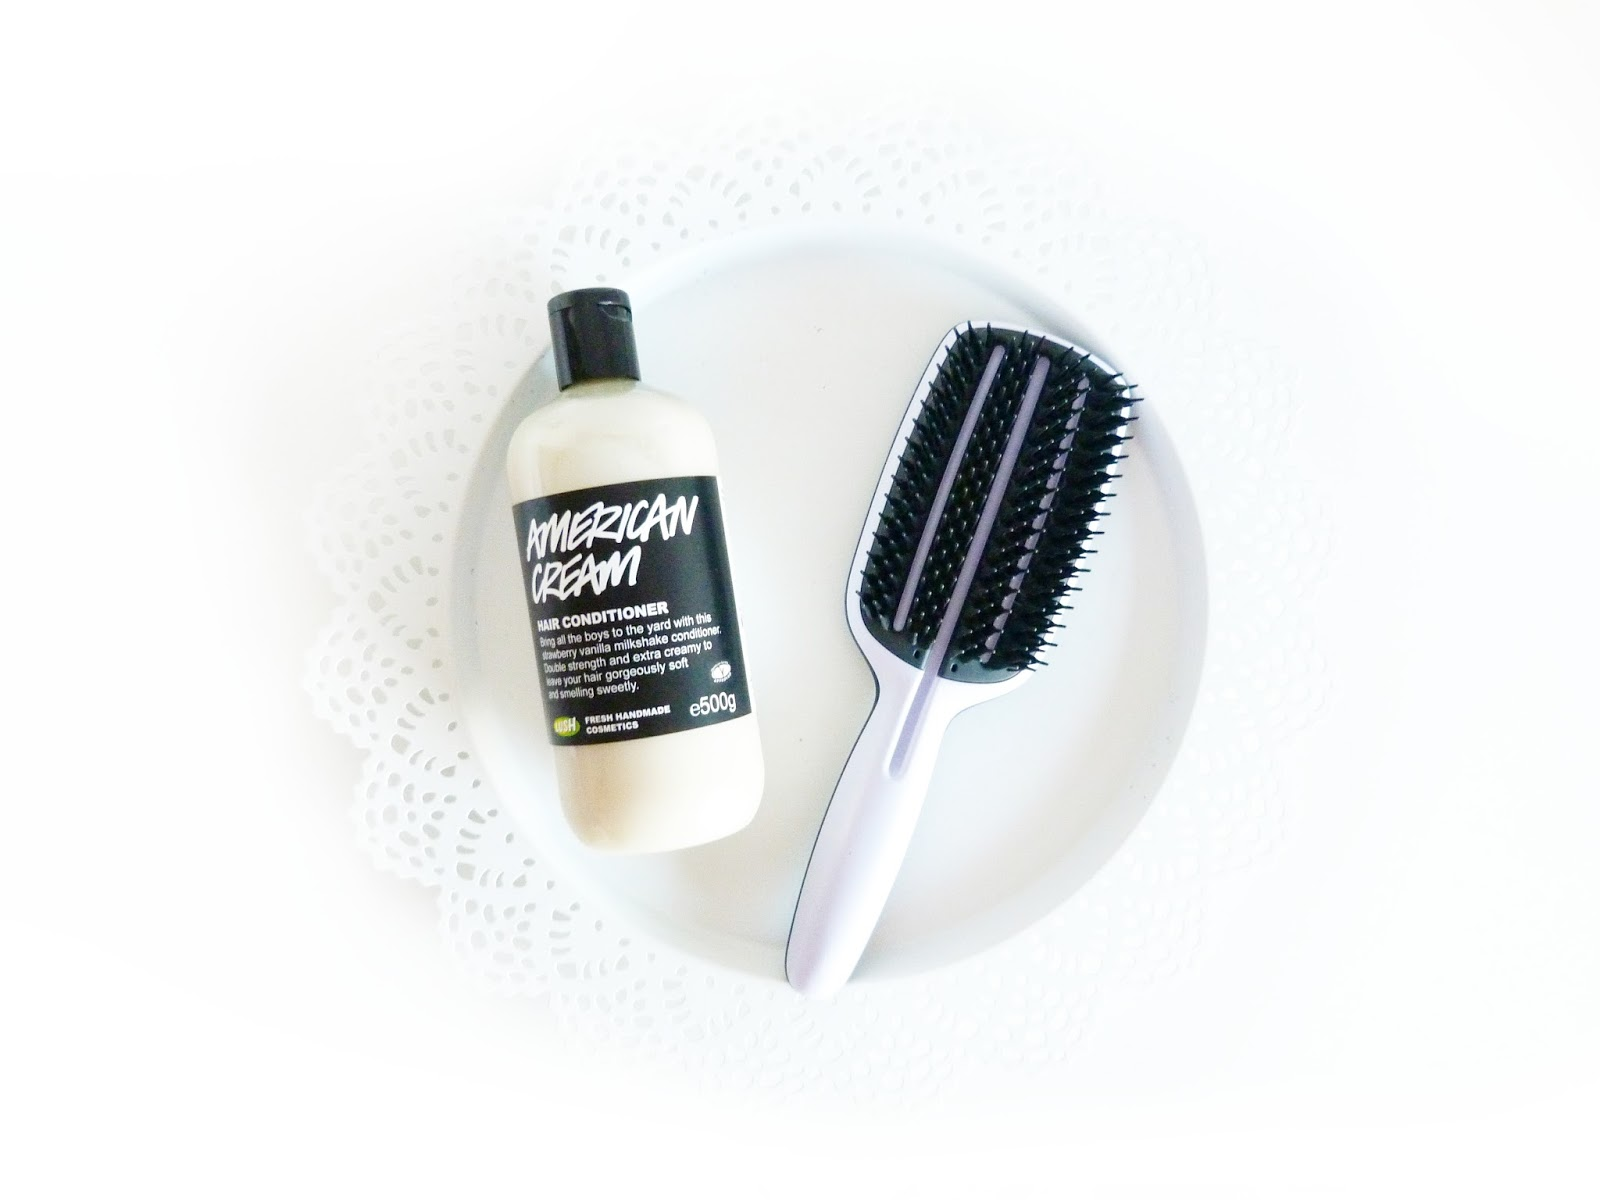 Tangle Teezer and LUSH conditioner for frizzy hair